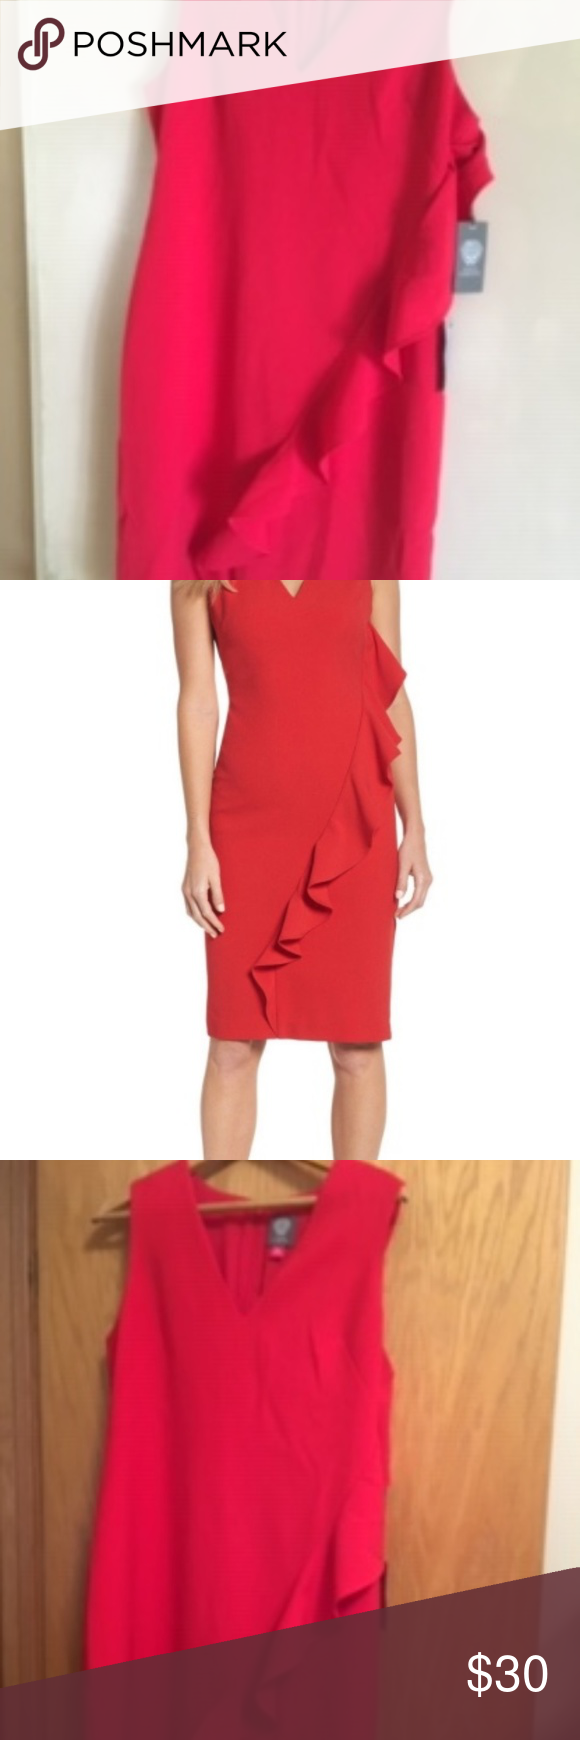 Nordstrom S Nwt Vince Camuto Dress Nwt Vince Camuto Red Dress Purchased At Nordstroms Vince Camuto Dresses Mi Vince Camuto Dress Clothes Design Dress Purchase [ 1740 x 580 Pixel ]